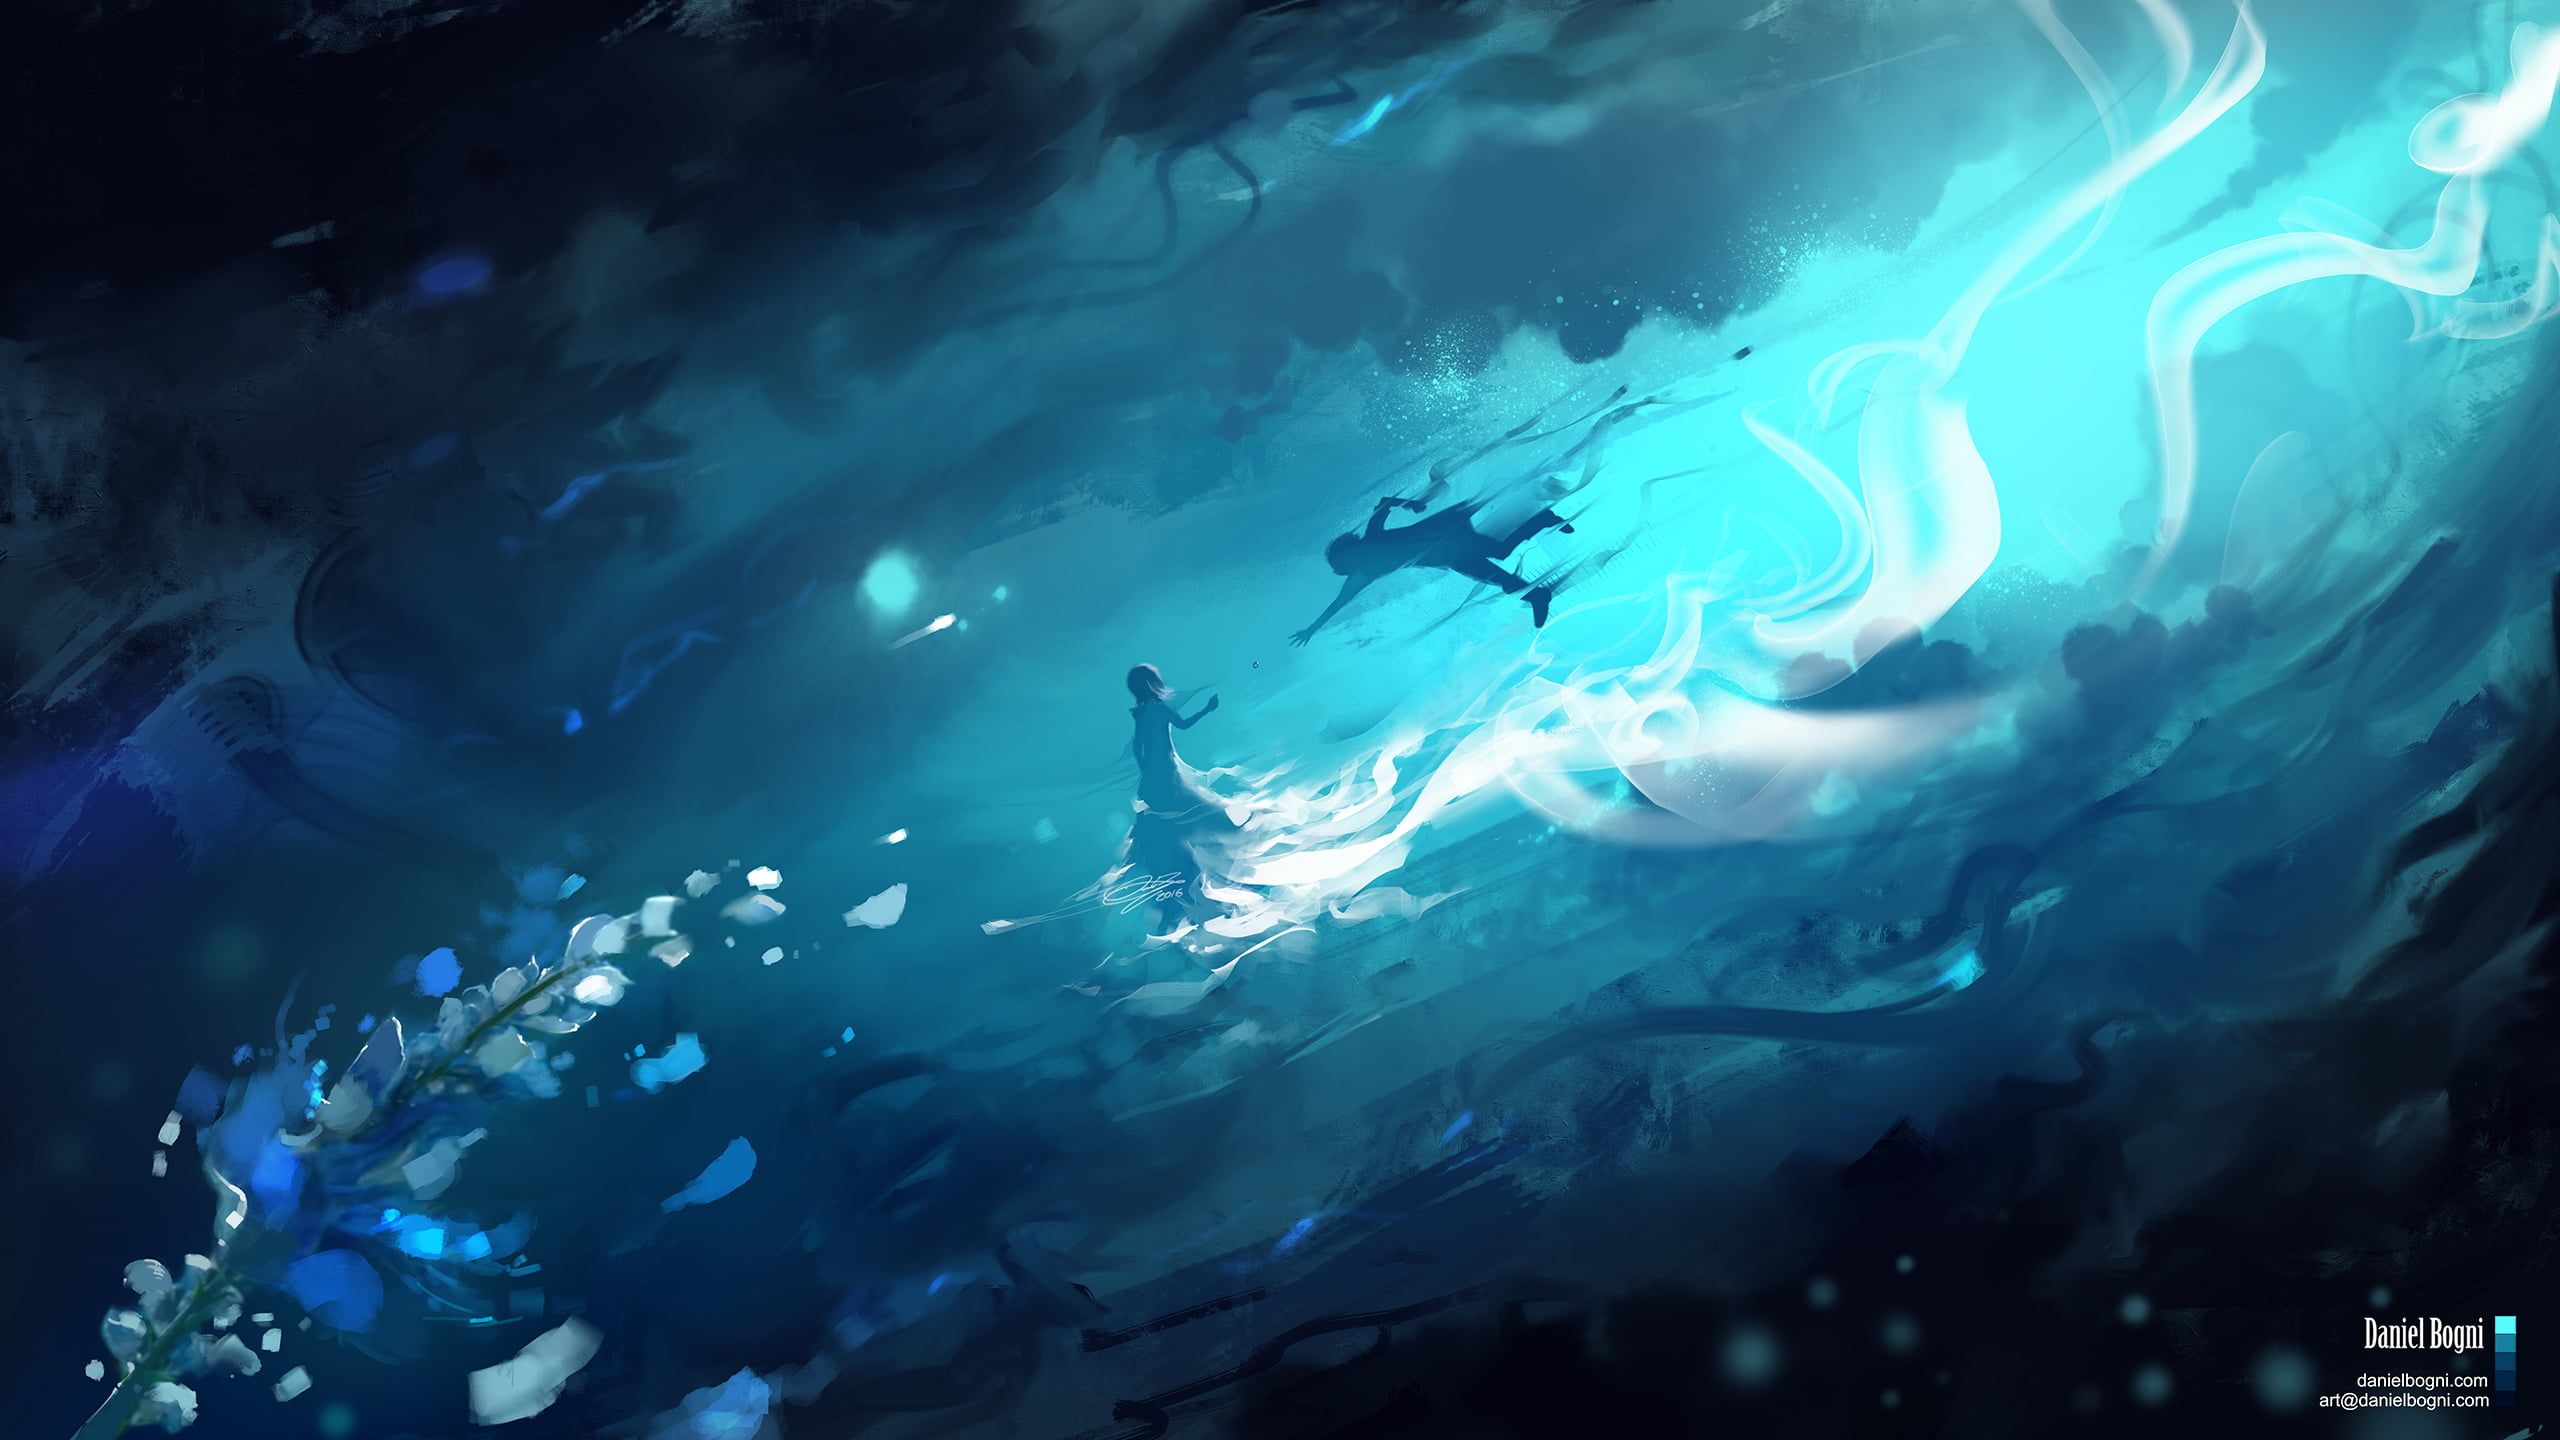 Wallpaper Final Fantasy Posted By Zoey Thompson